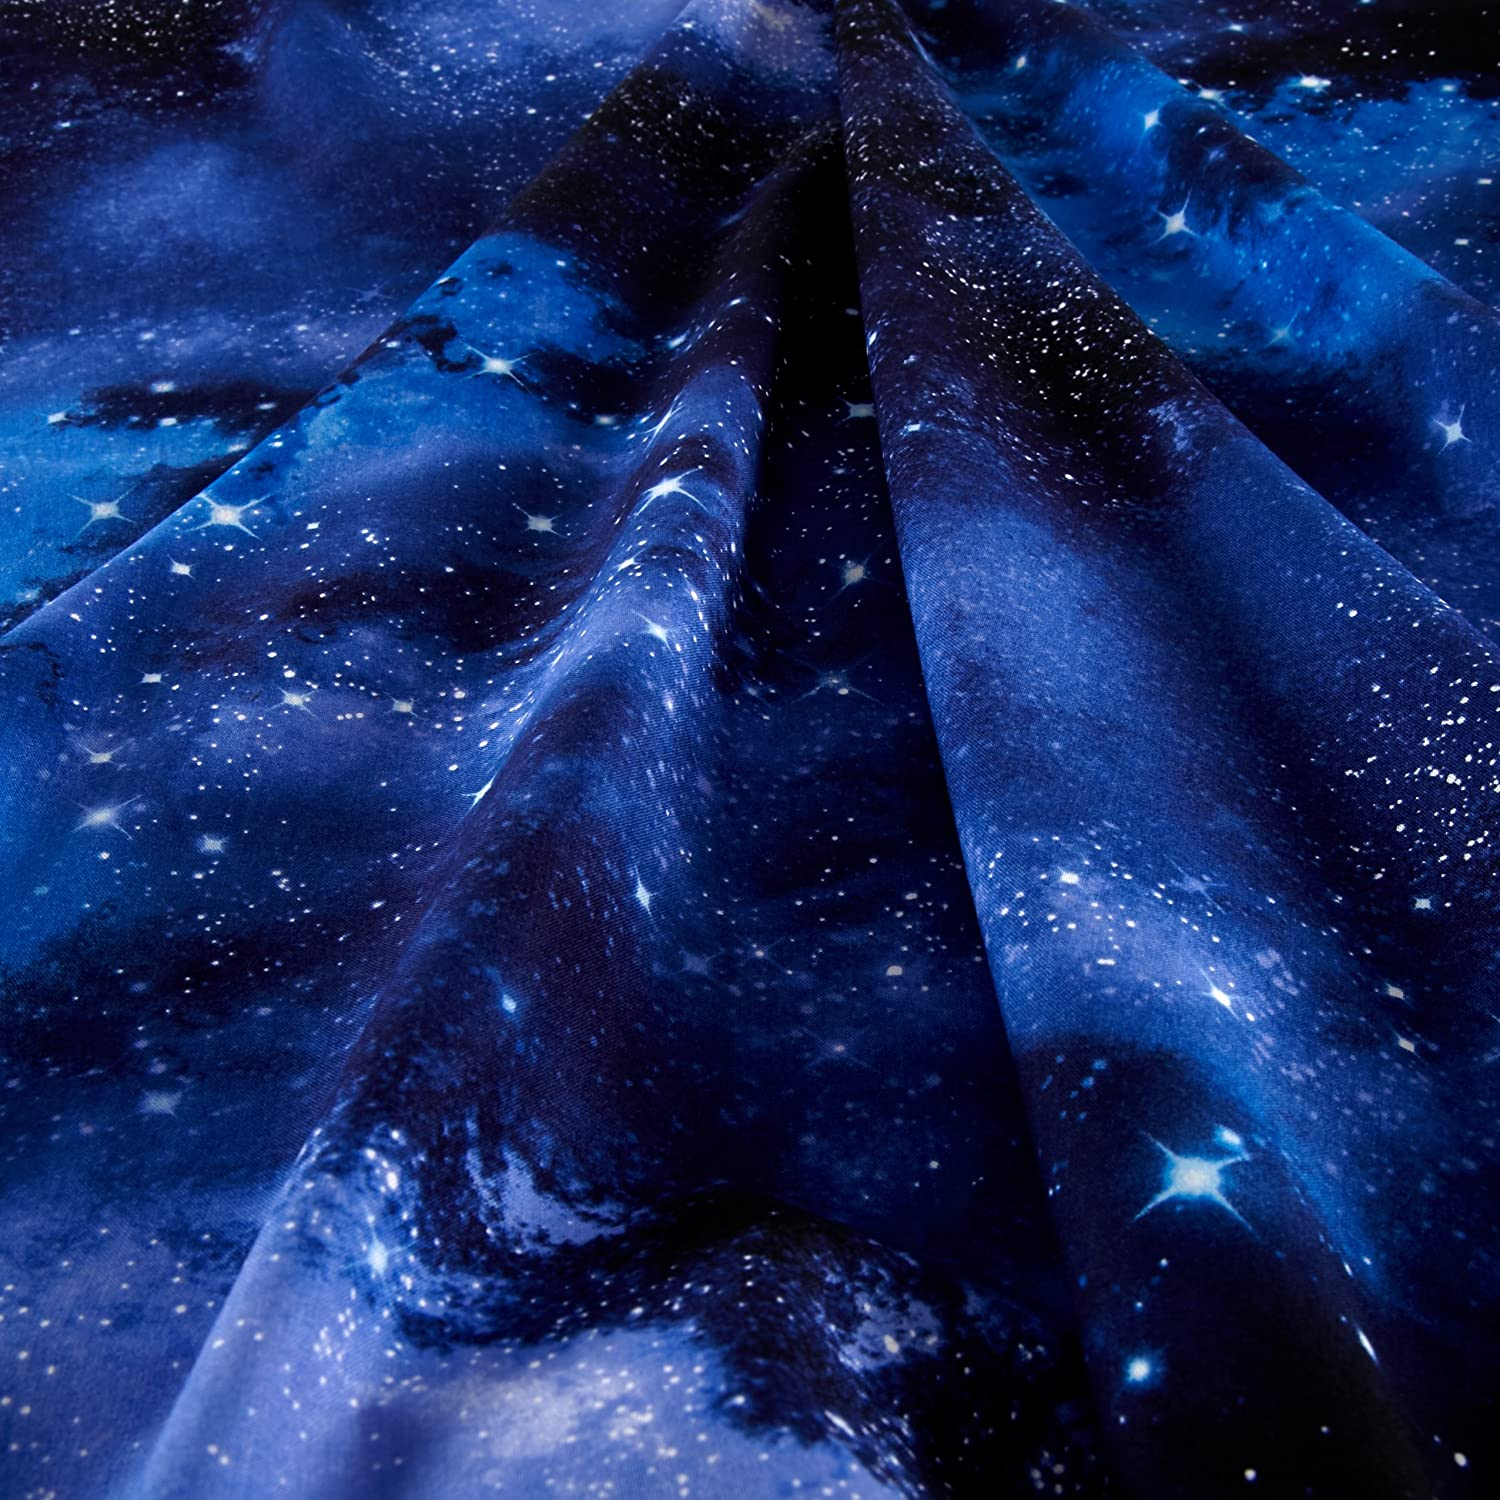 Timeless treasures space galaxy fabric by the yard arts for Timeless treasures galaxy fabric